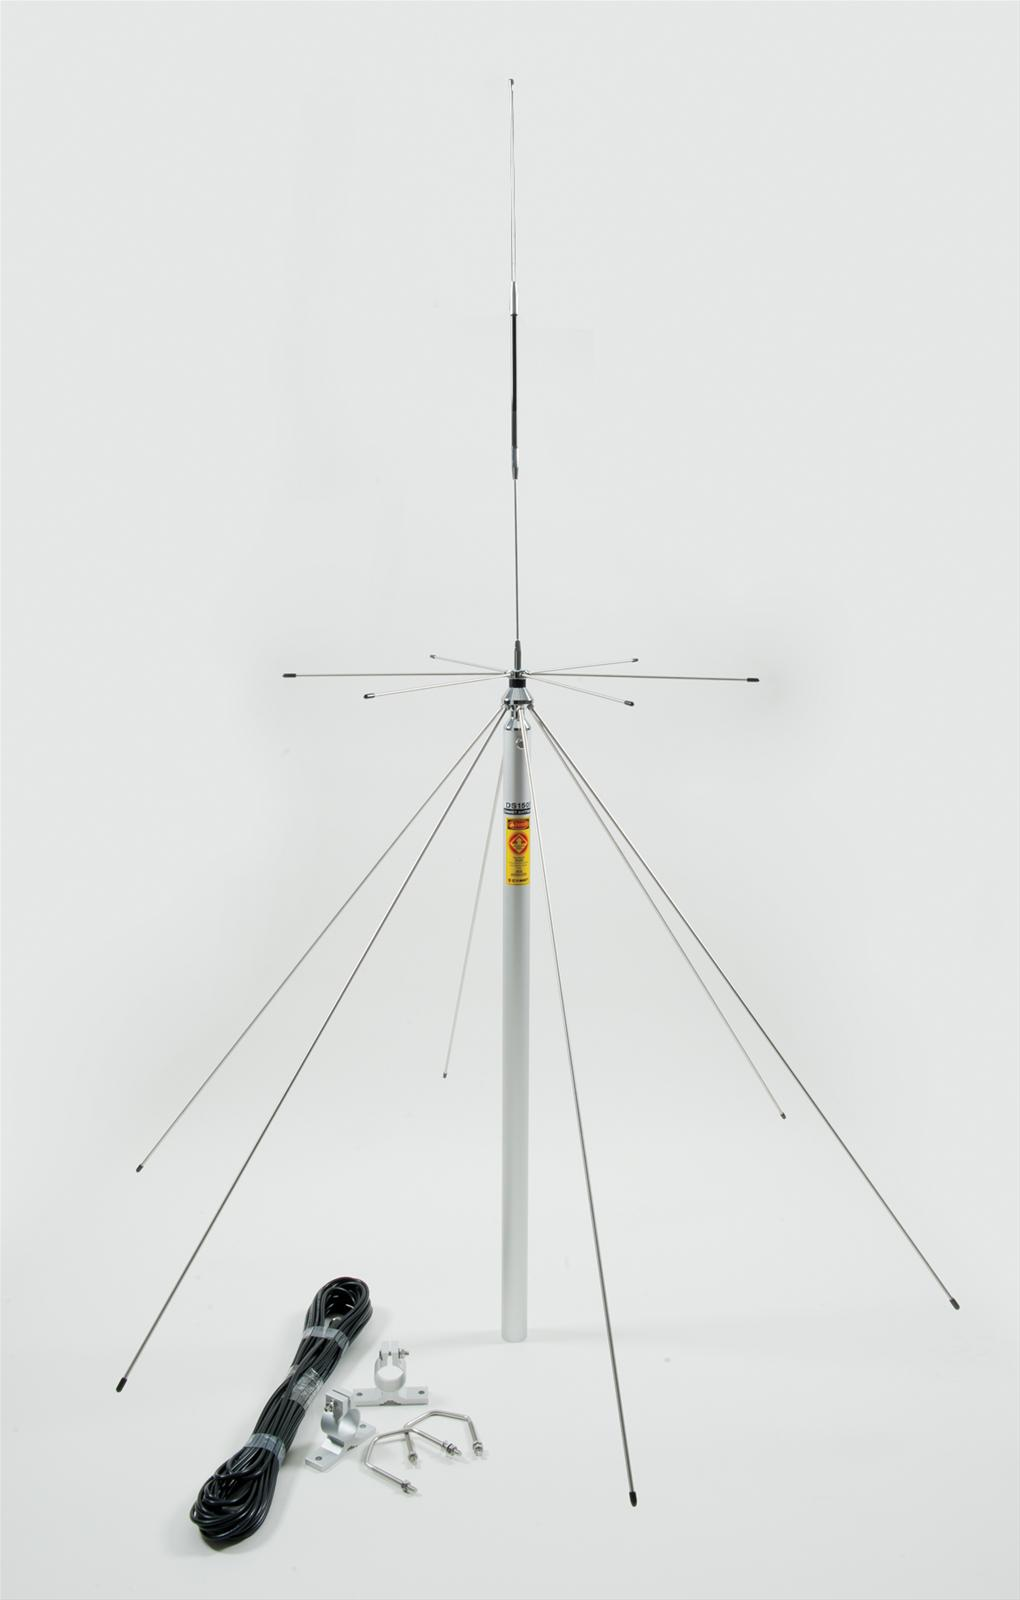 Comet DS-150S Discone Base Antennas DS-150S